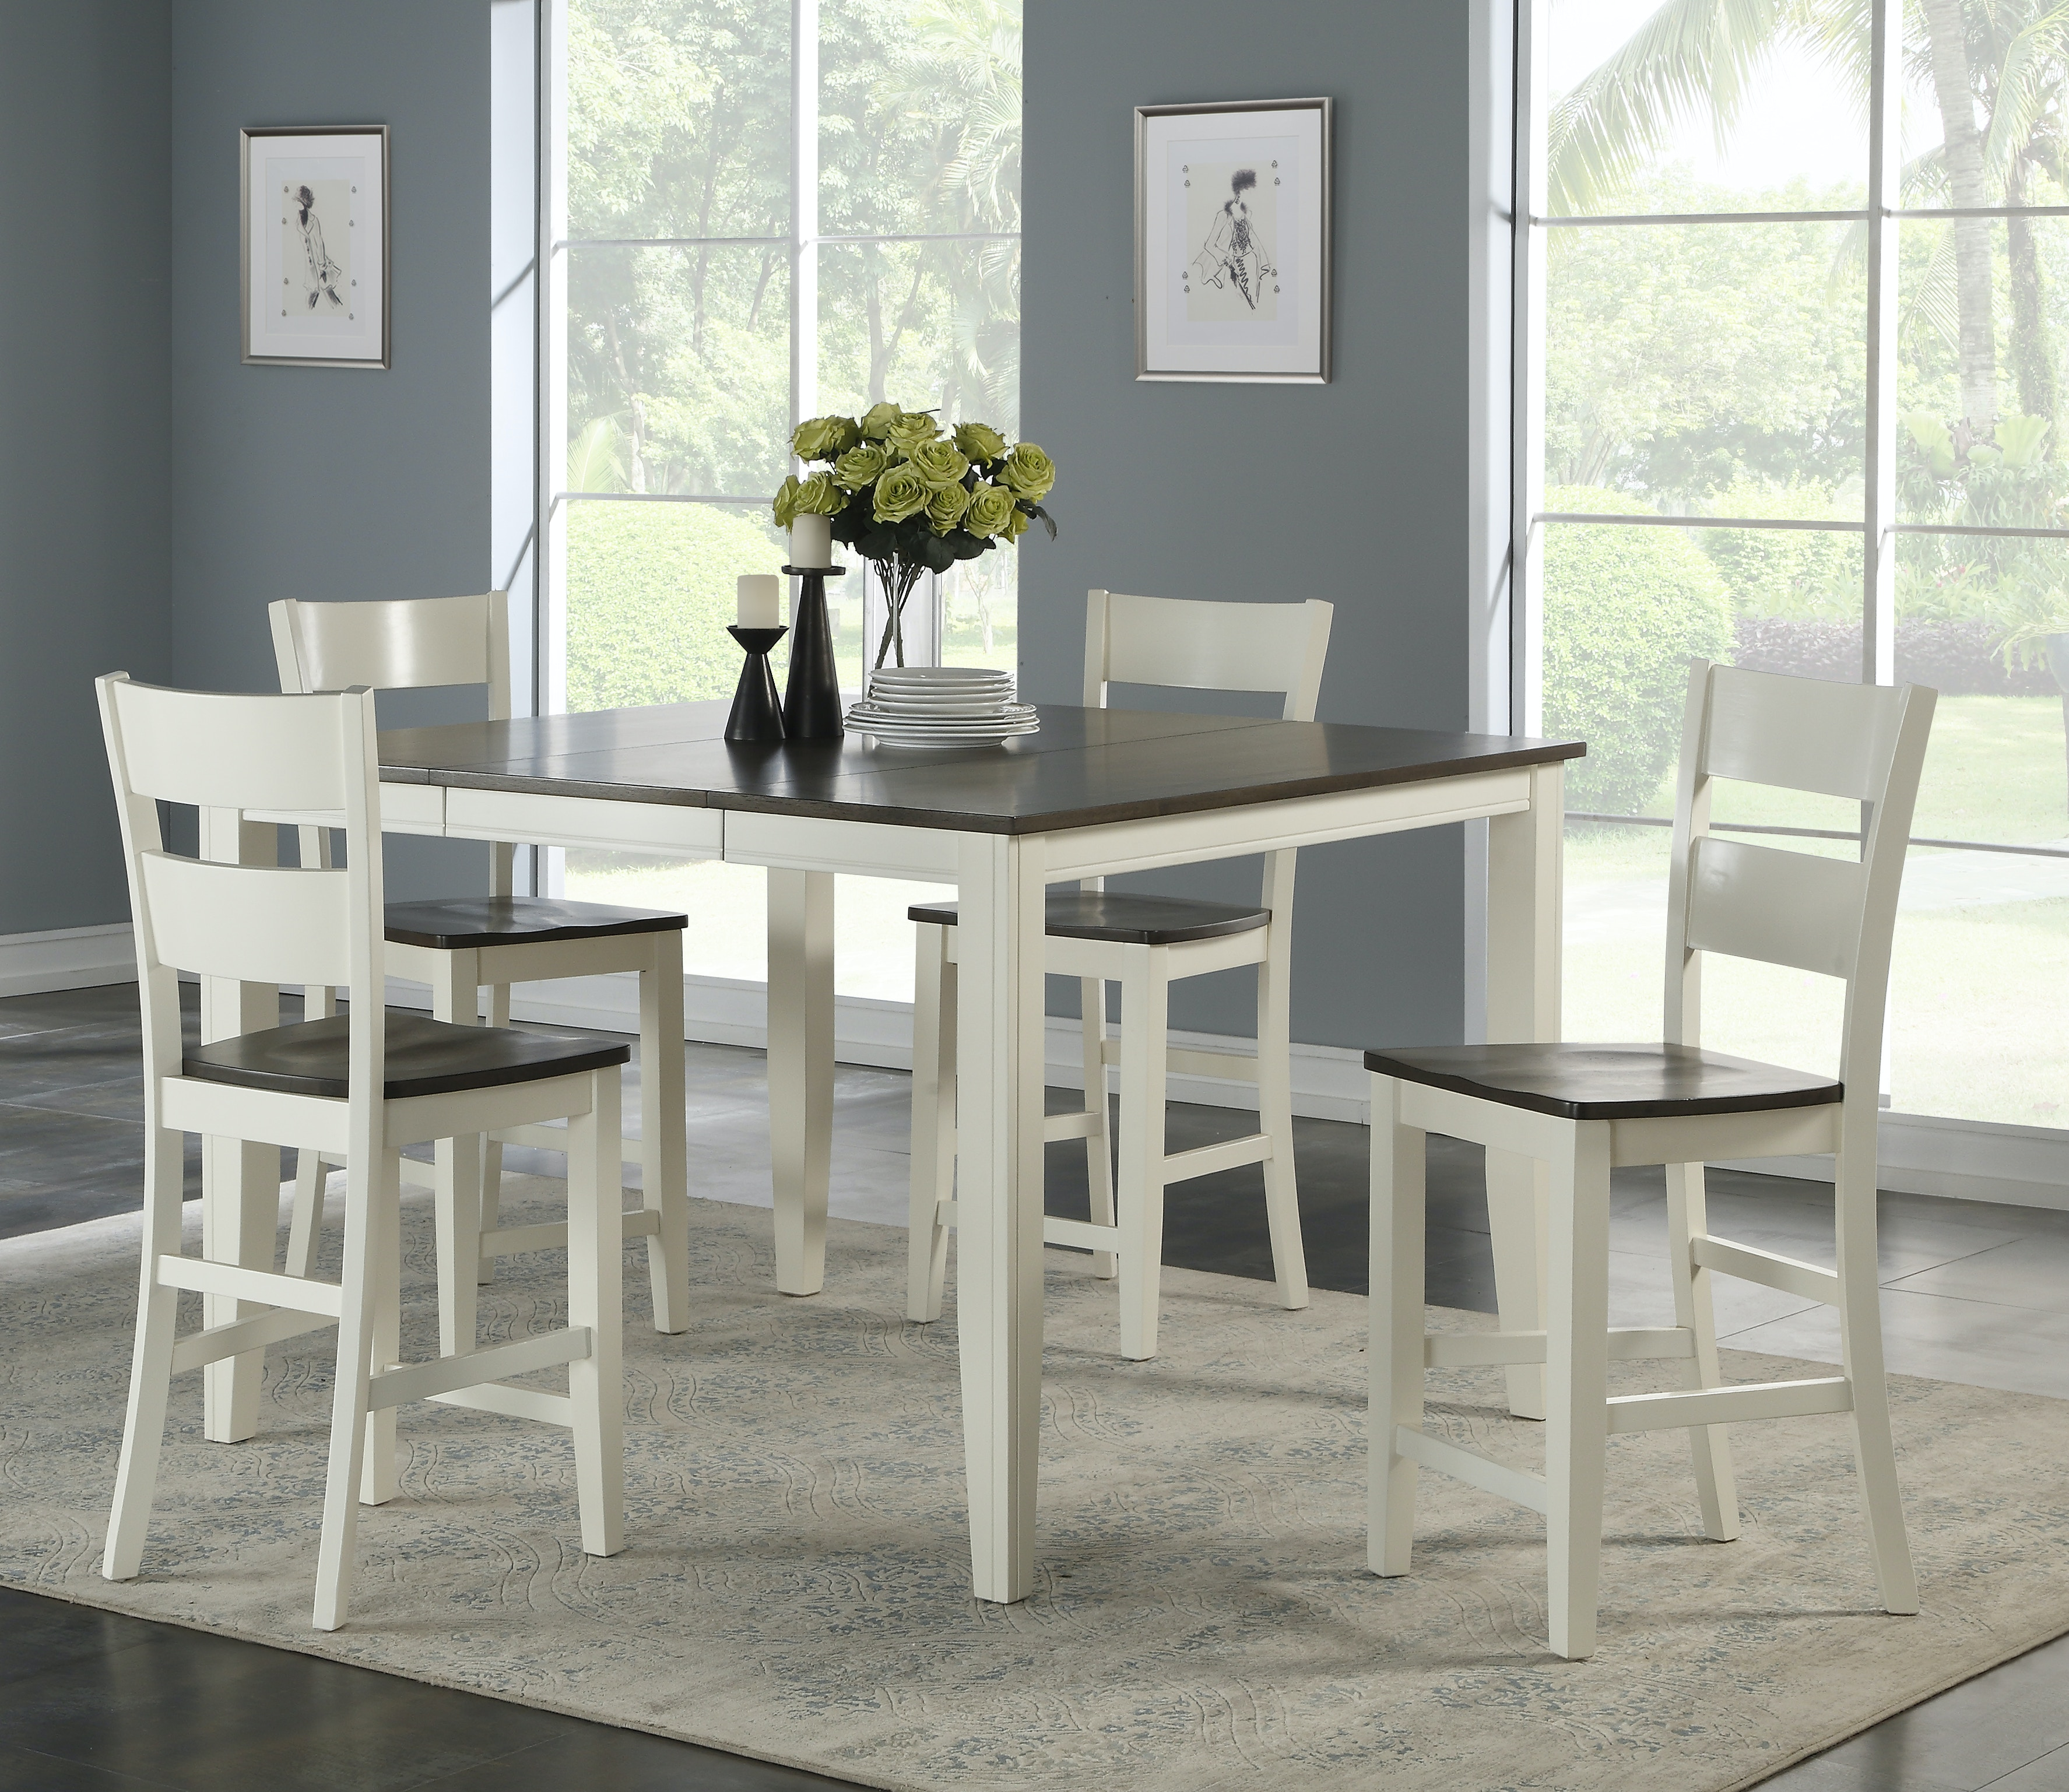 Dining Room Madera Whitegrey 5 Piece Counter Height Dining Set